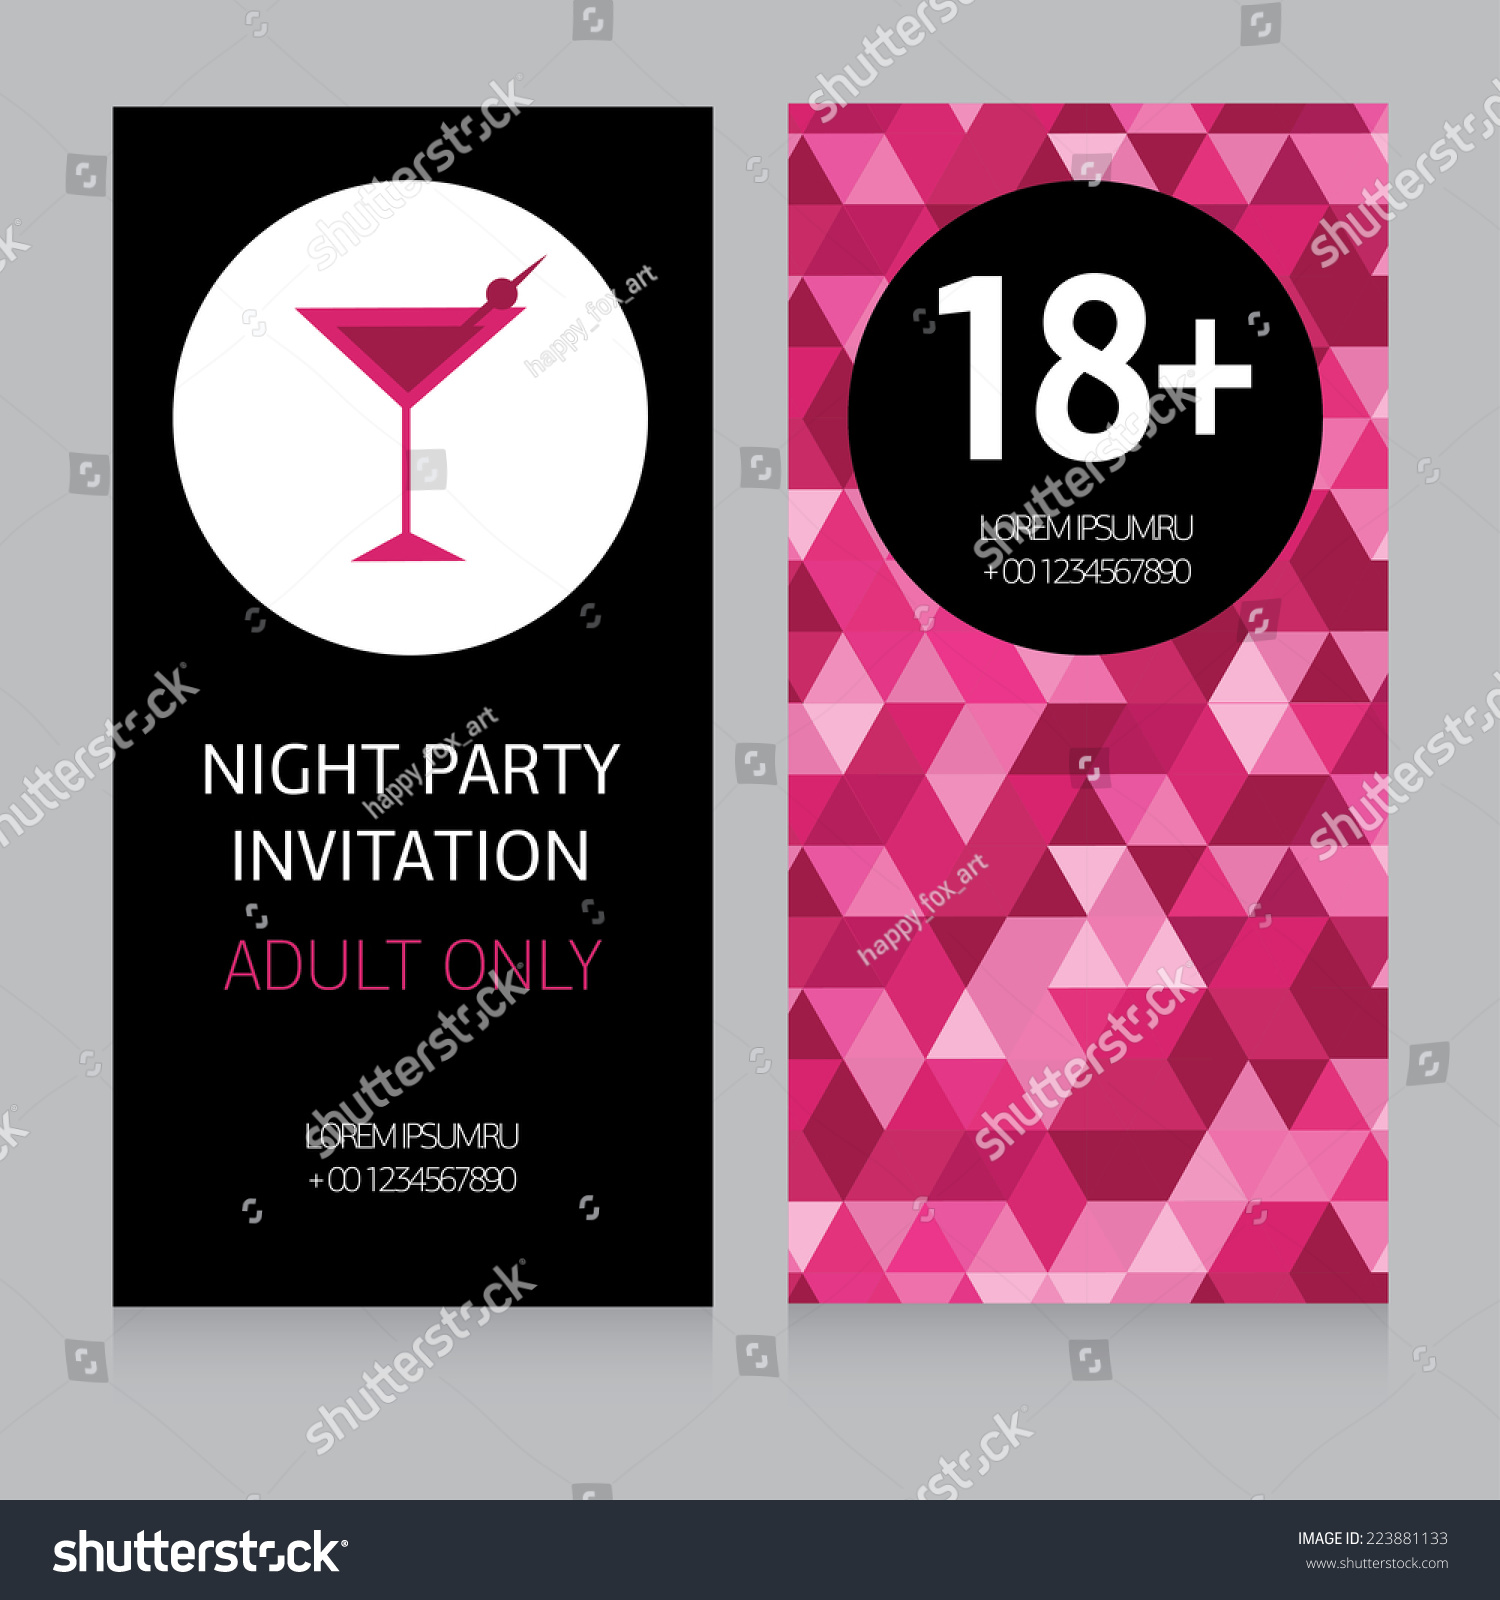 Invitation Party Wedding Free Vector Graphic On Pixabay: Design Template For Night Party Invitation, Vector